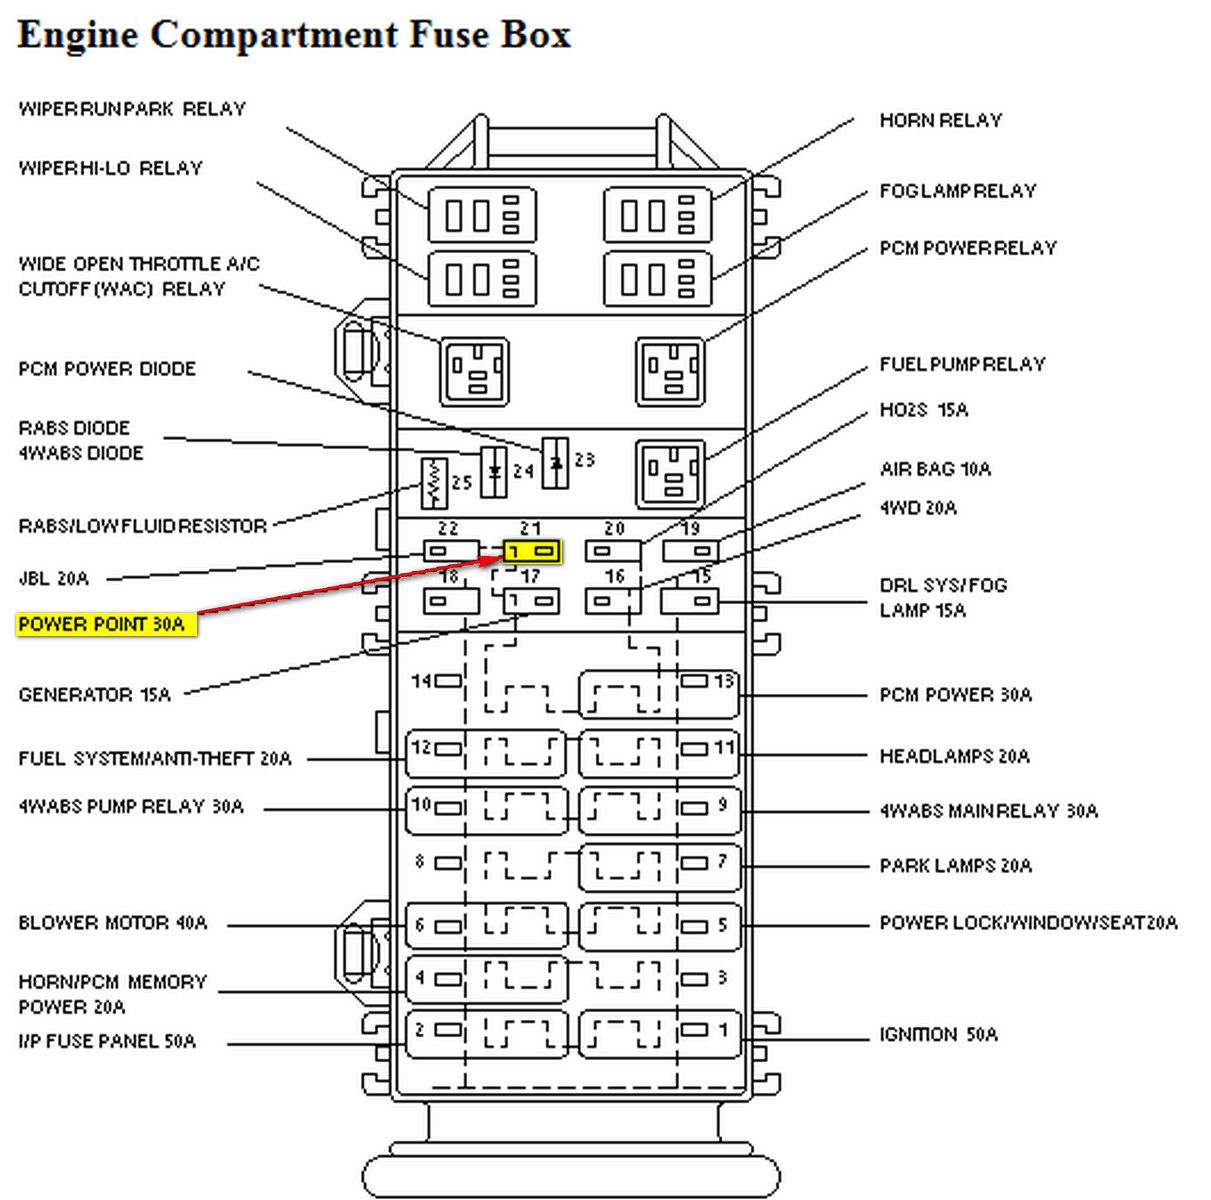 2012 F250 Fuse Panel Diagram Manual Guide Wiring 1996 Ford F 250 Box 2013 Library Rh 22 Muehlwald De